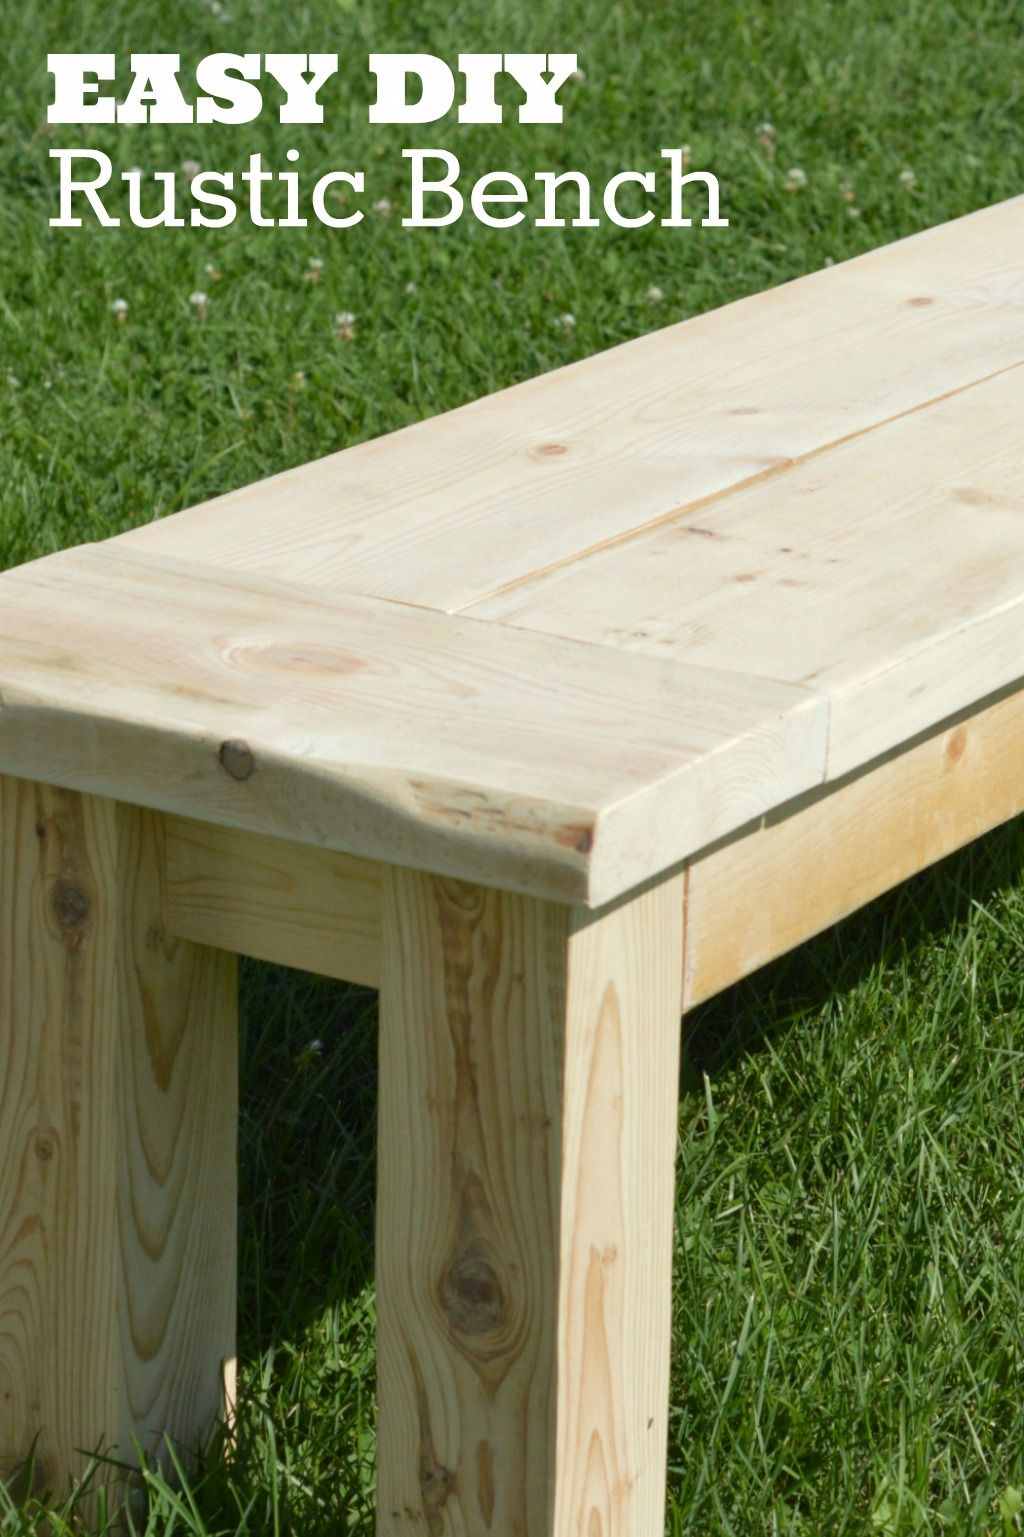 DIY Rustic Bench. Click the picture to learn how to build this DIY seating bench! http://scrappygeek.com/diy-seating-bench/